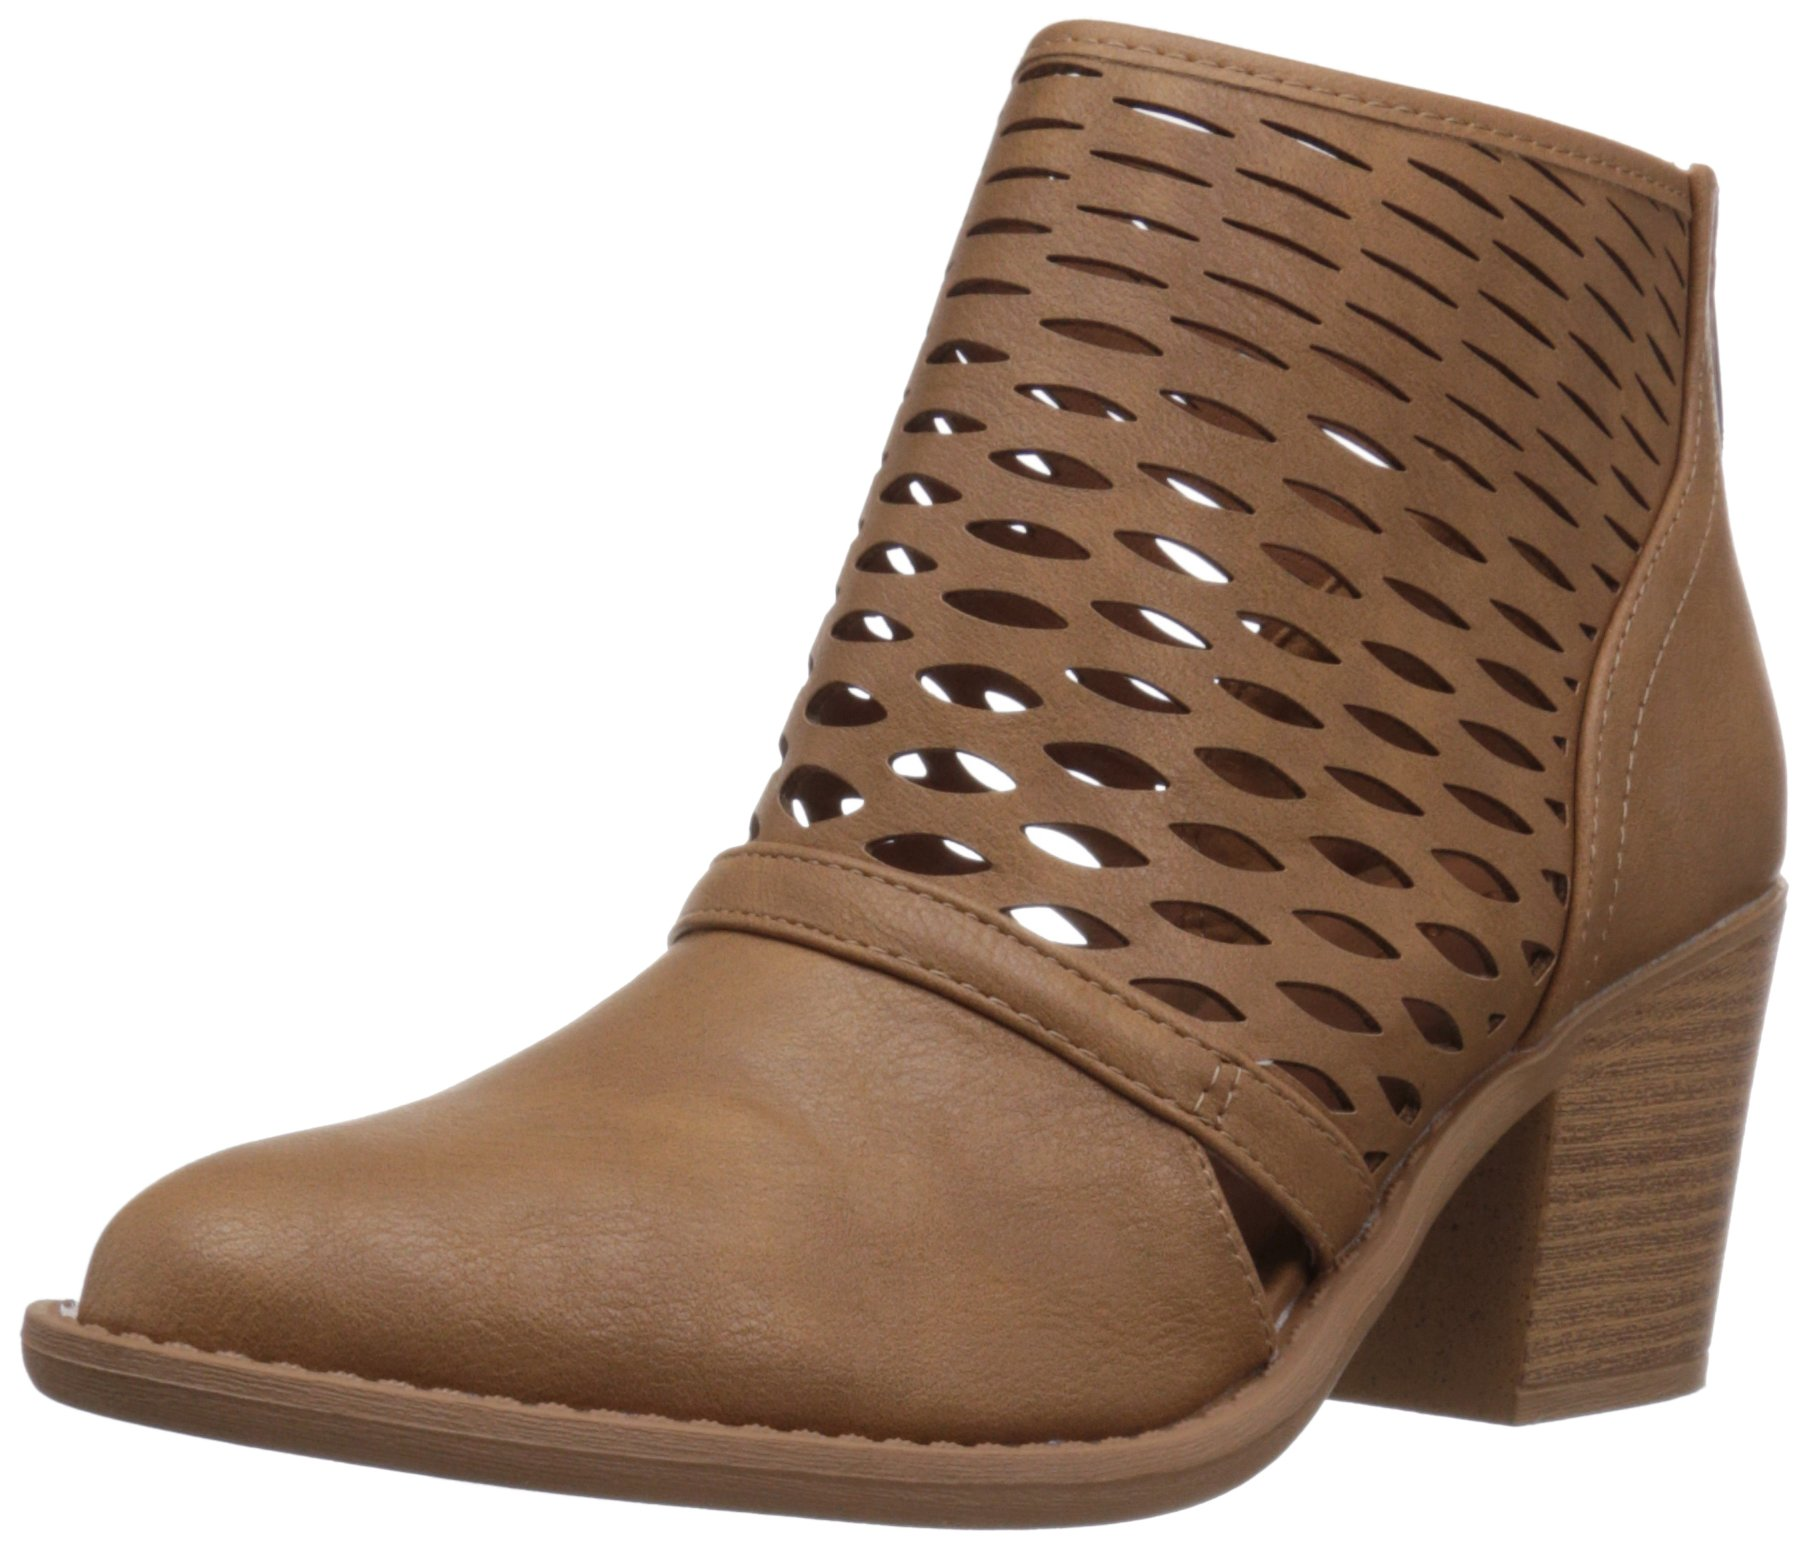 Qupid Women's Tobin-53 Ankle Bootie, Tan, 8.5 M US by Qupid (Image #1)